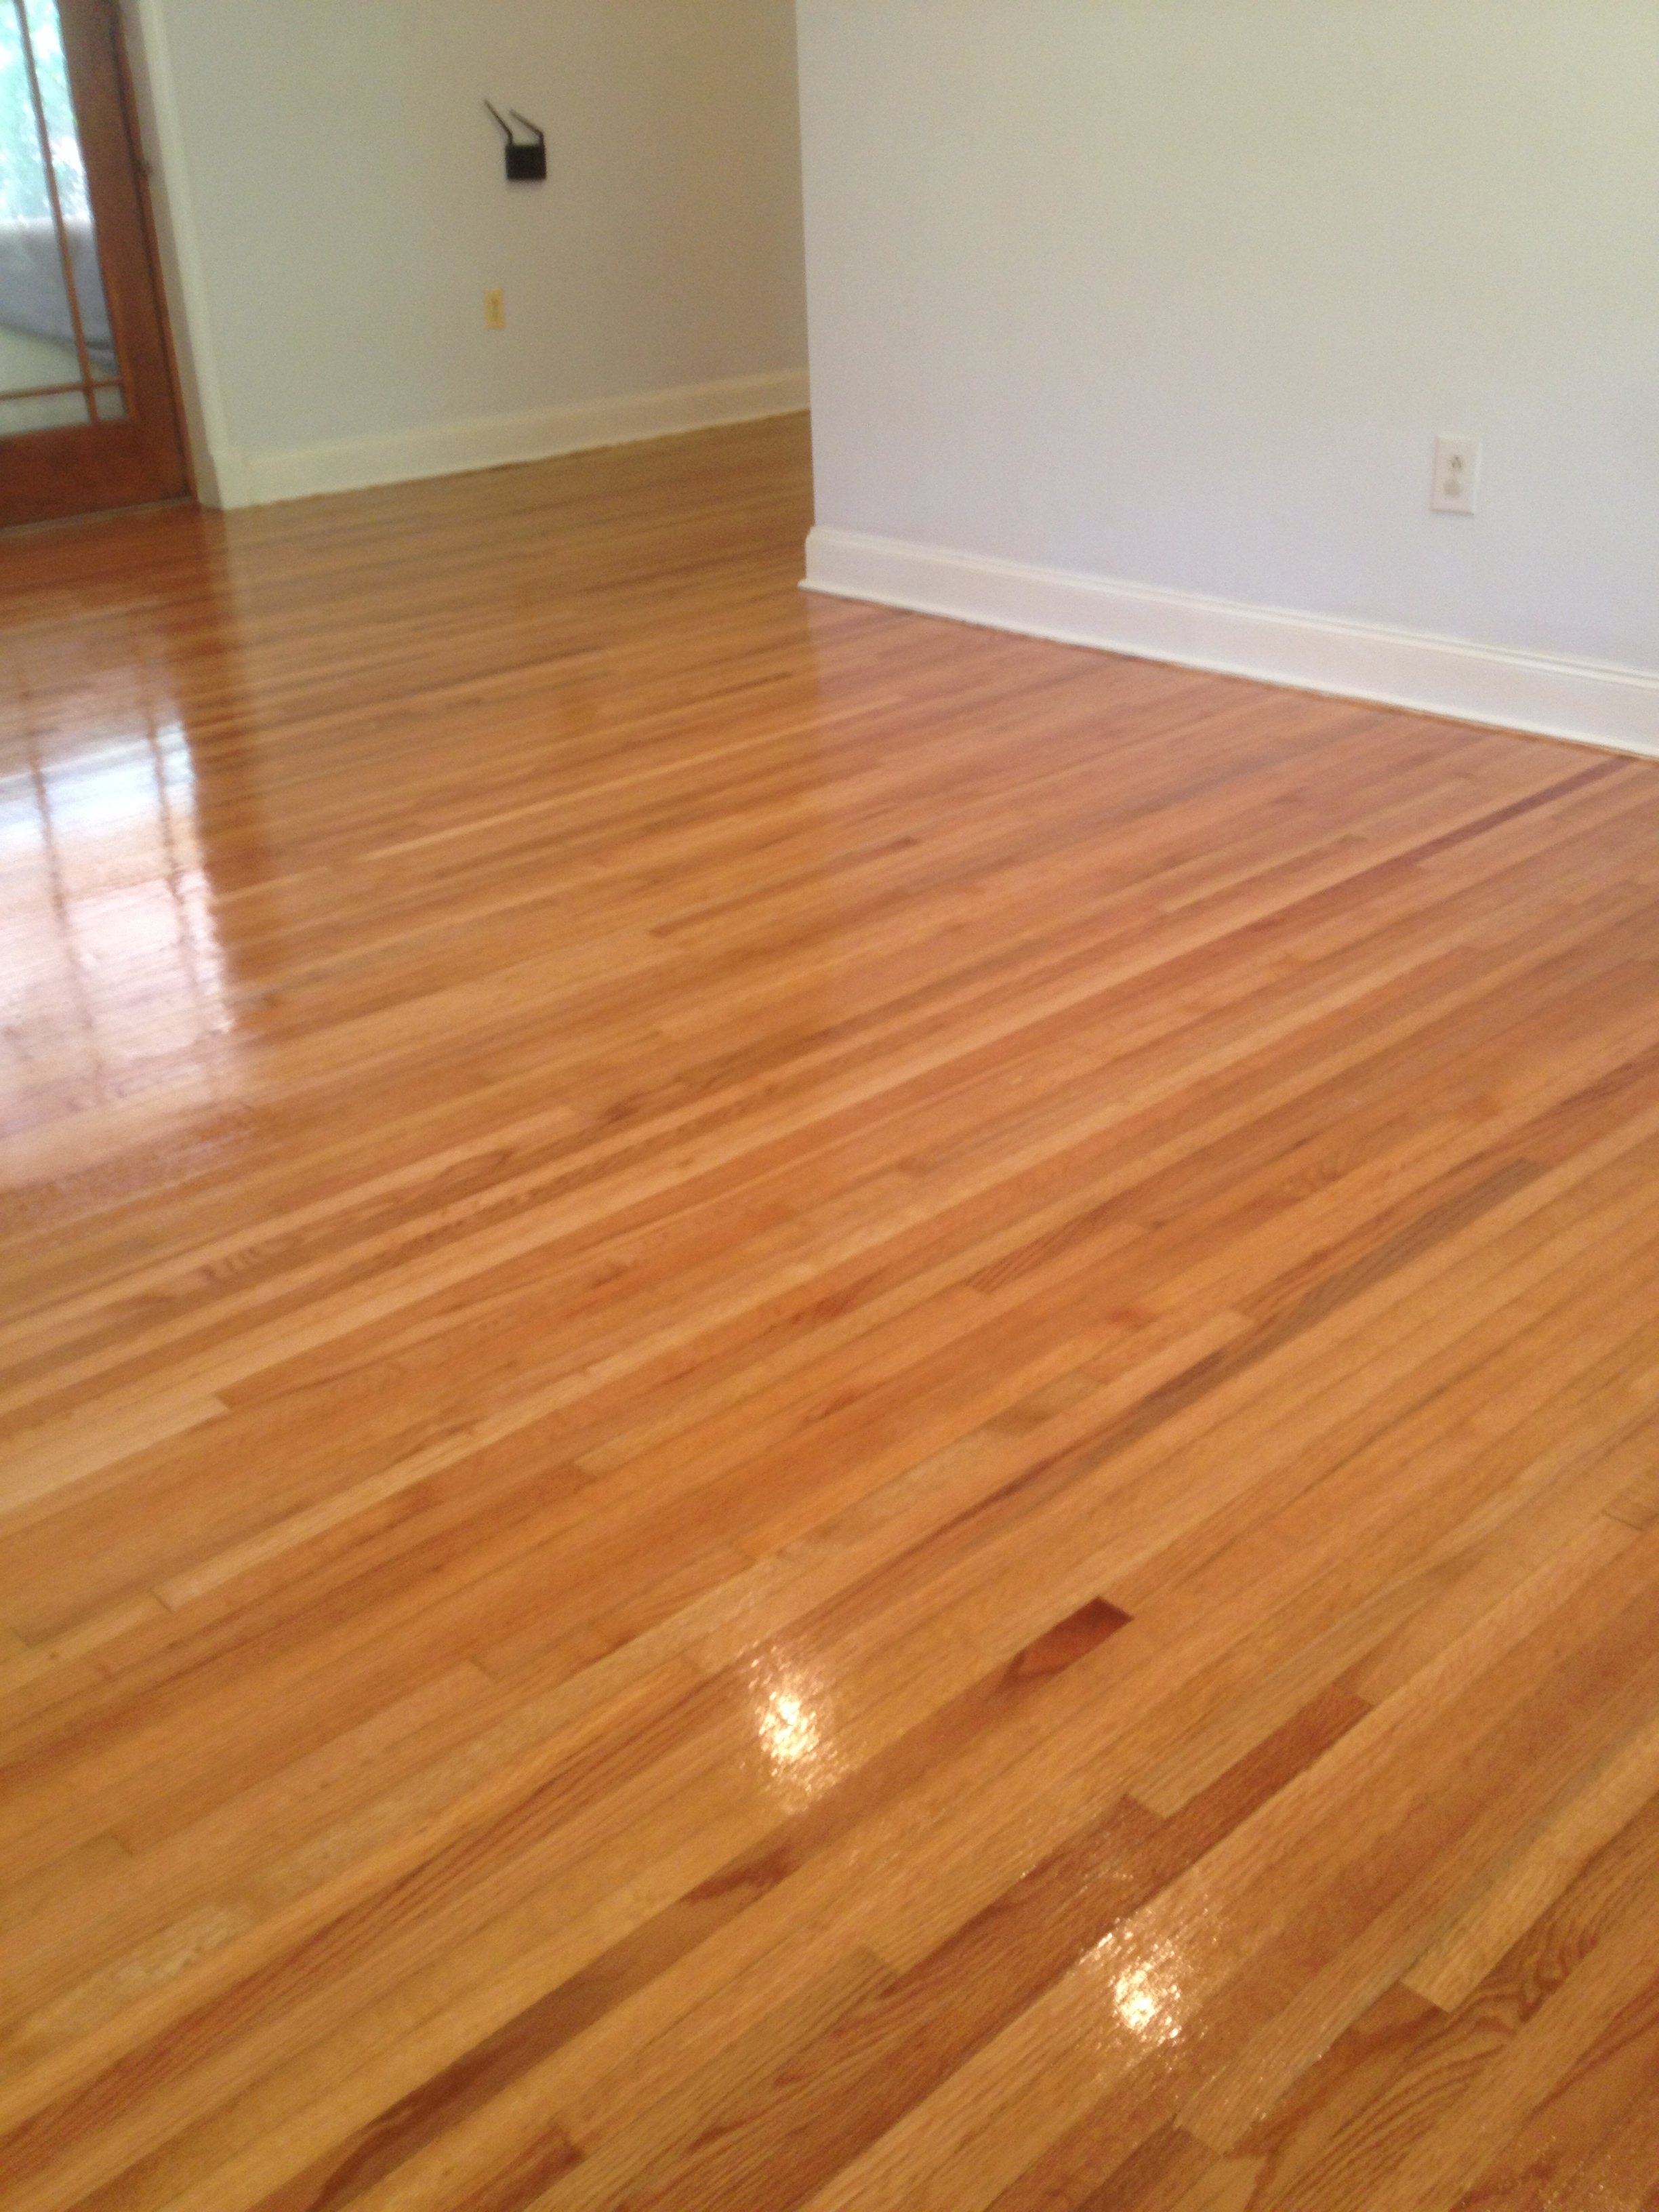 Apex wood floors inc at 6499 sw 39th st miami fl on fave for Wood flooring miami